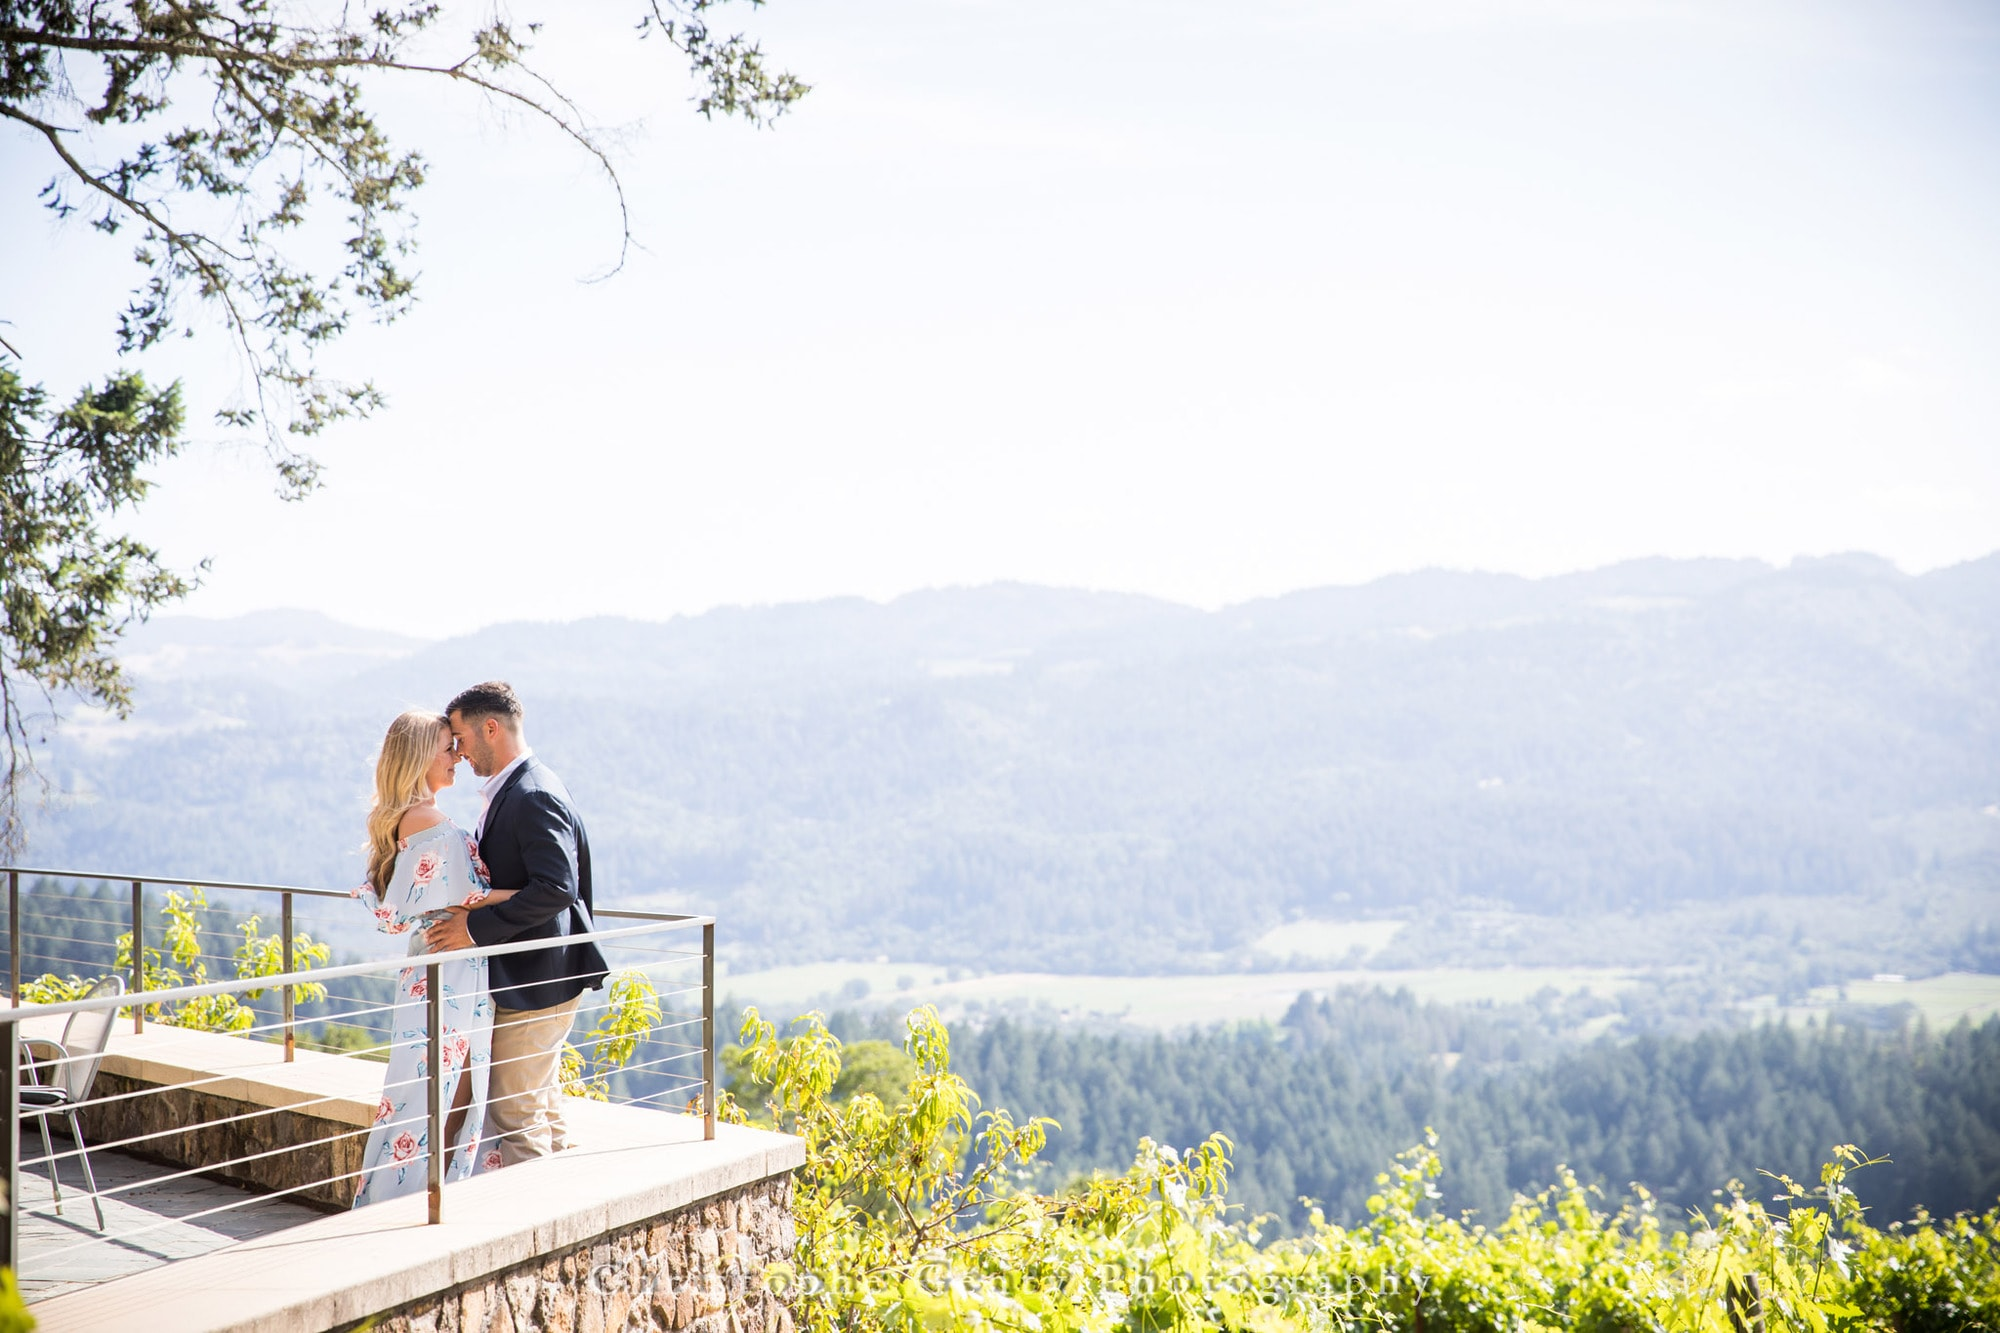 Marriage Proposal Photography in Napa -1037